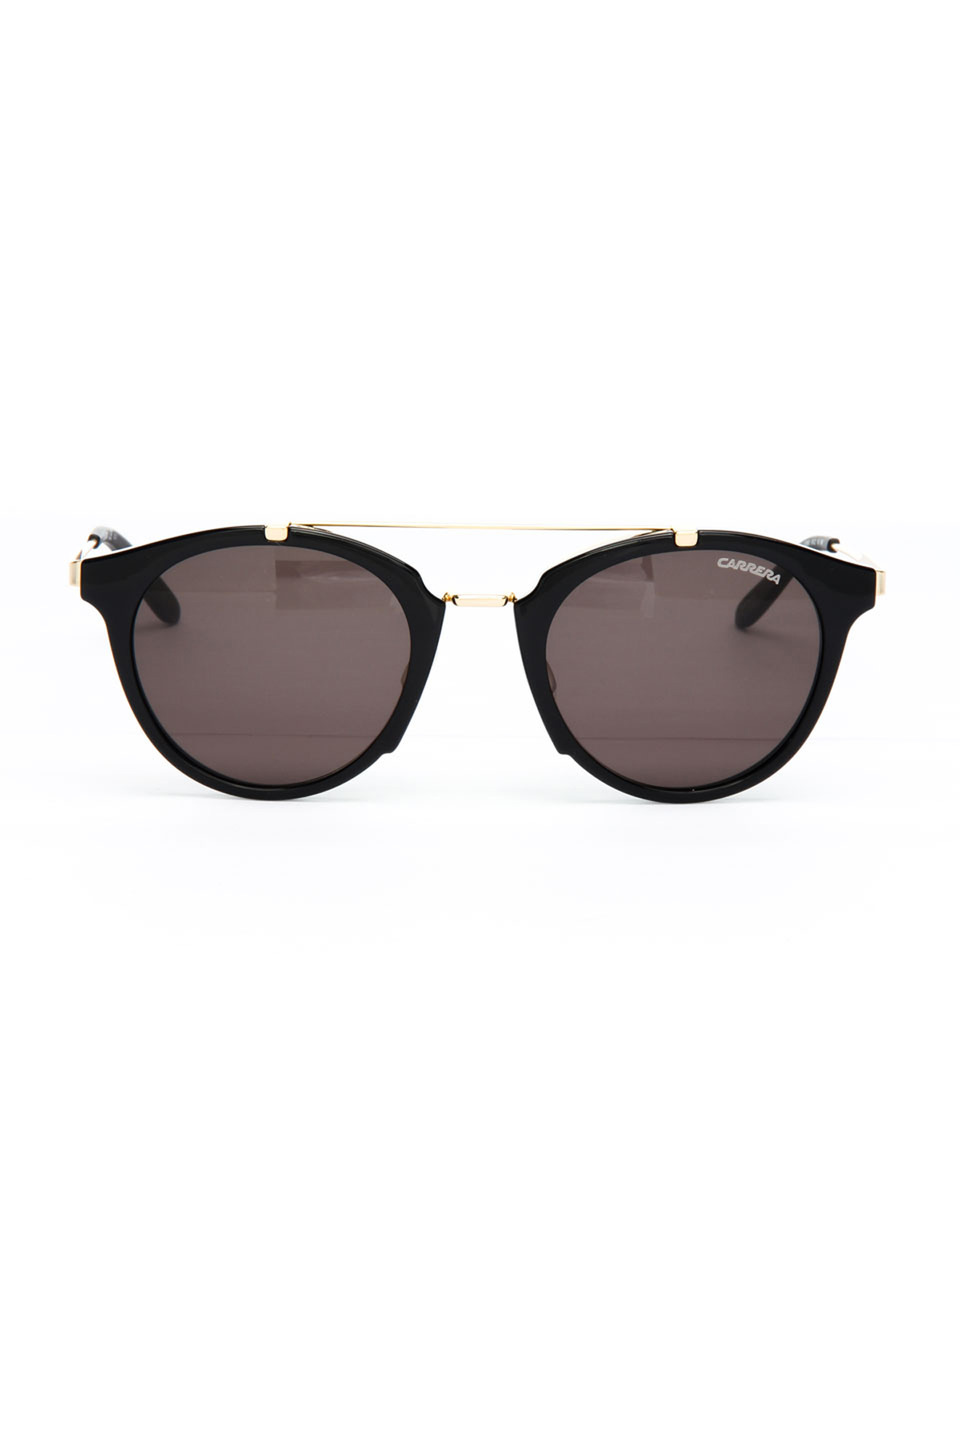 Carrera Unisex Sunglasses in Shiny Black and Gold